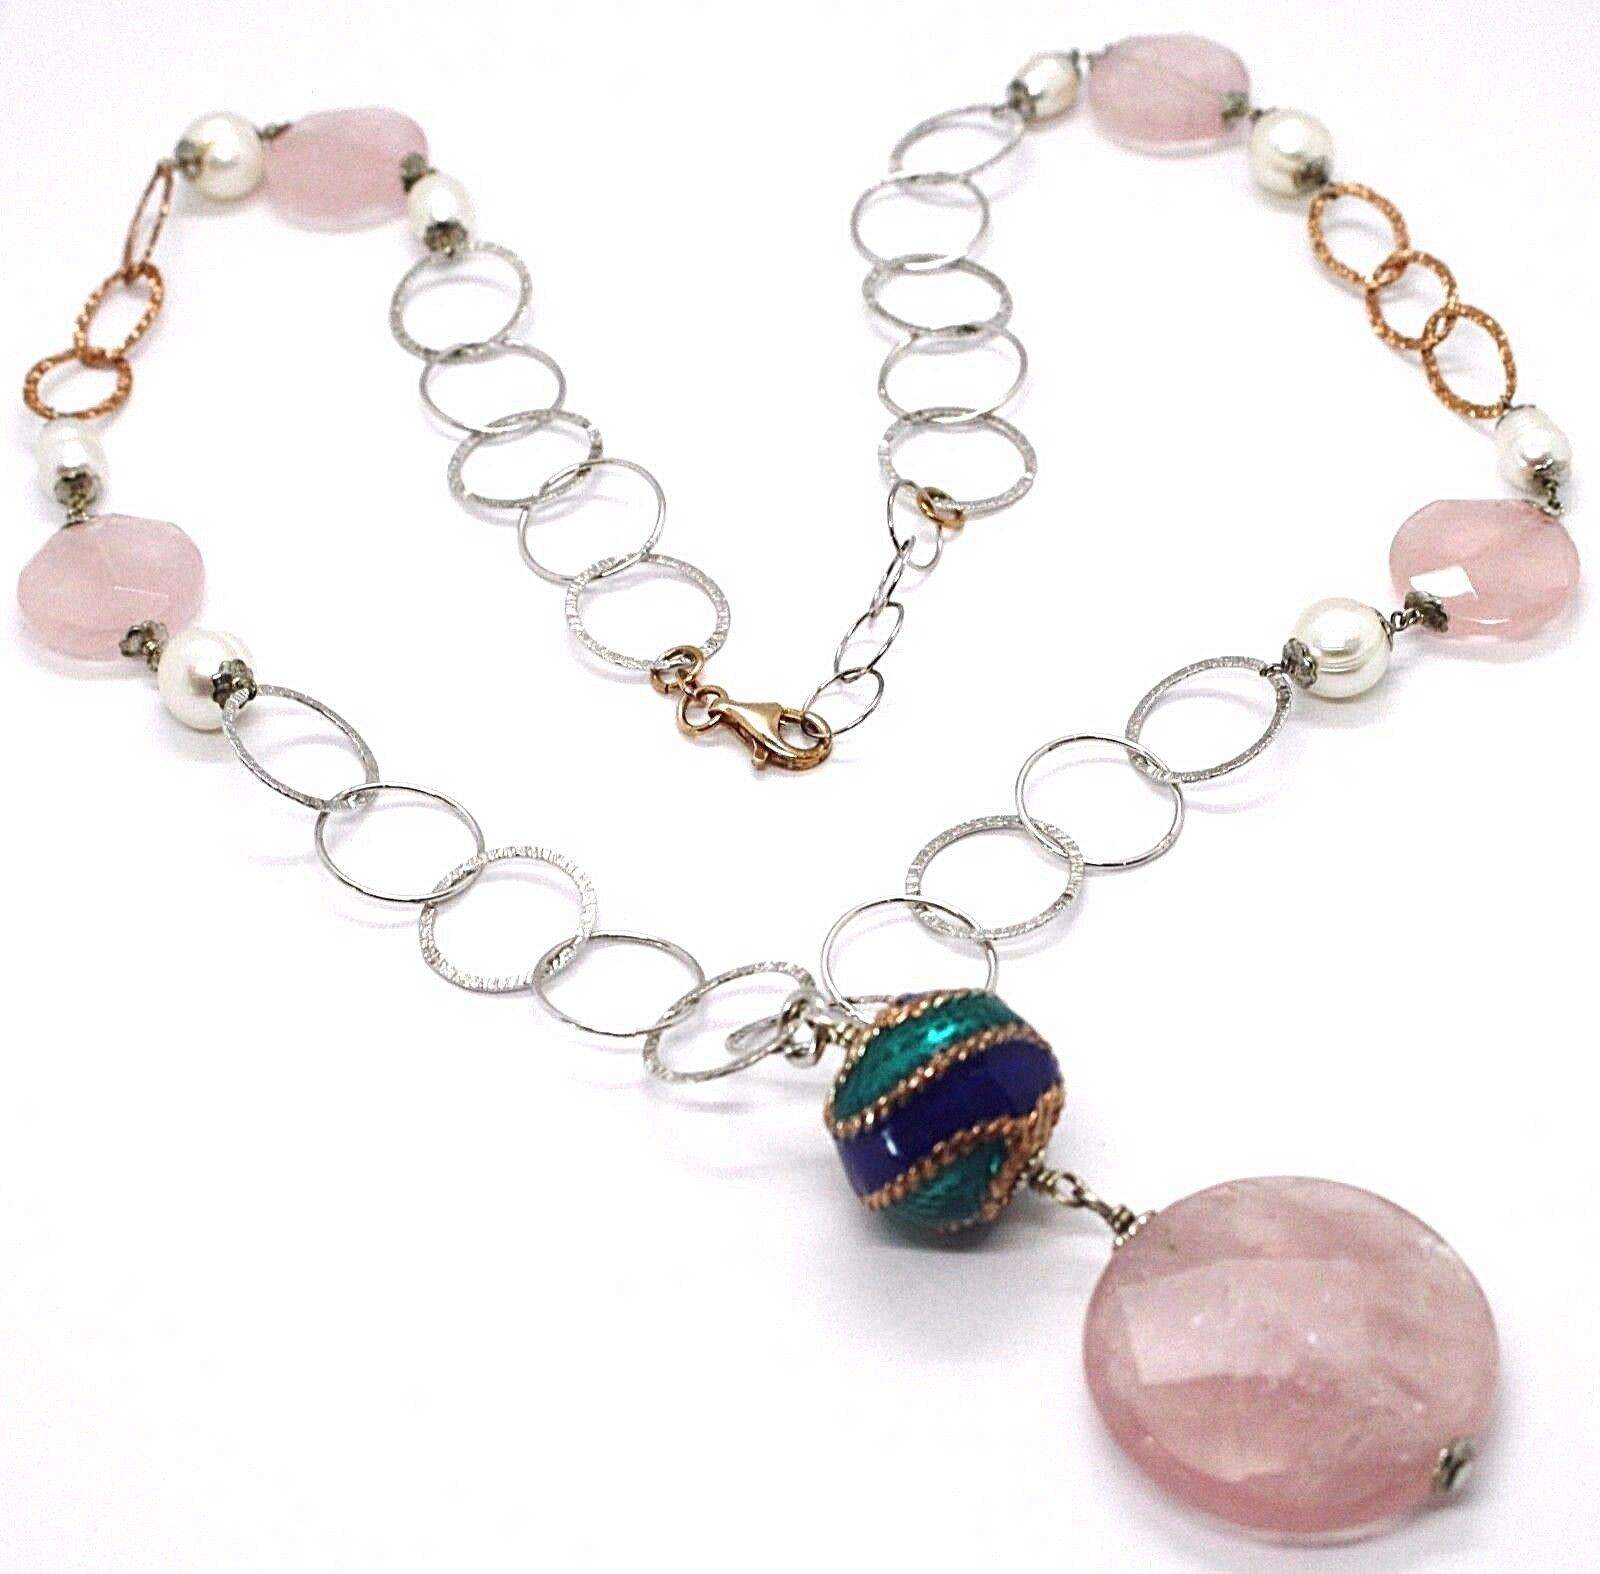 Necklace Silver 925, Pink Quartz Disco, Chain Rolo ' Worked, Pearls, 70 CM